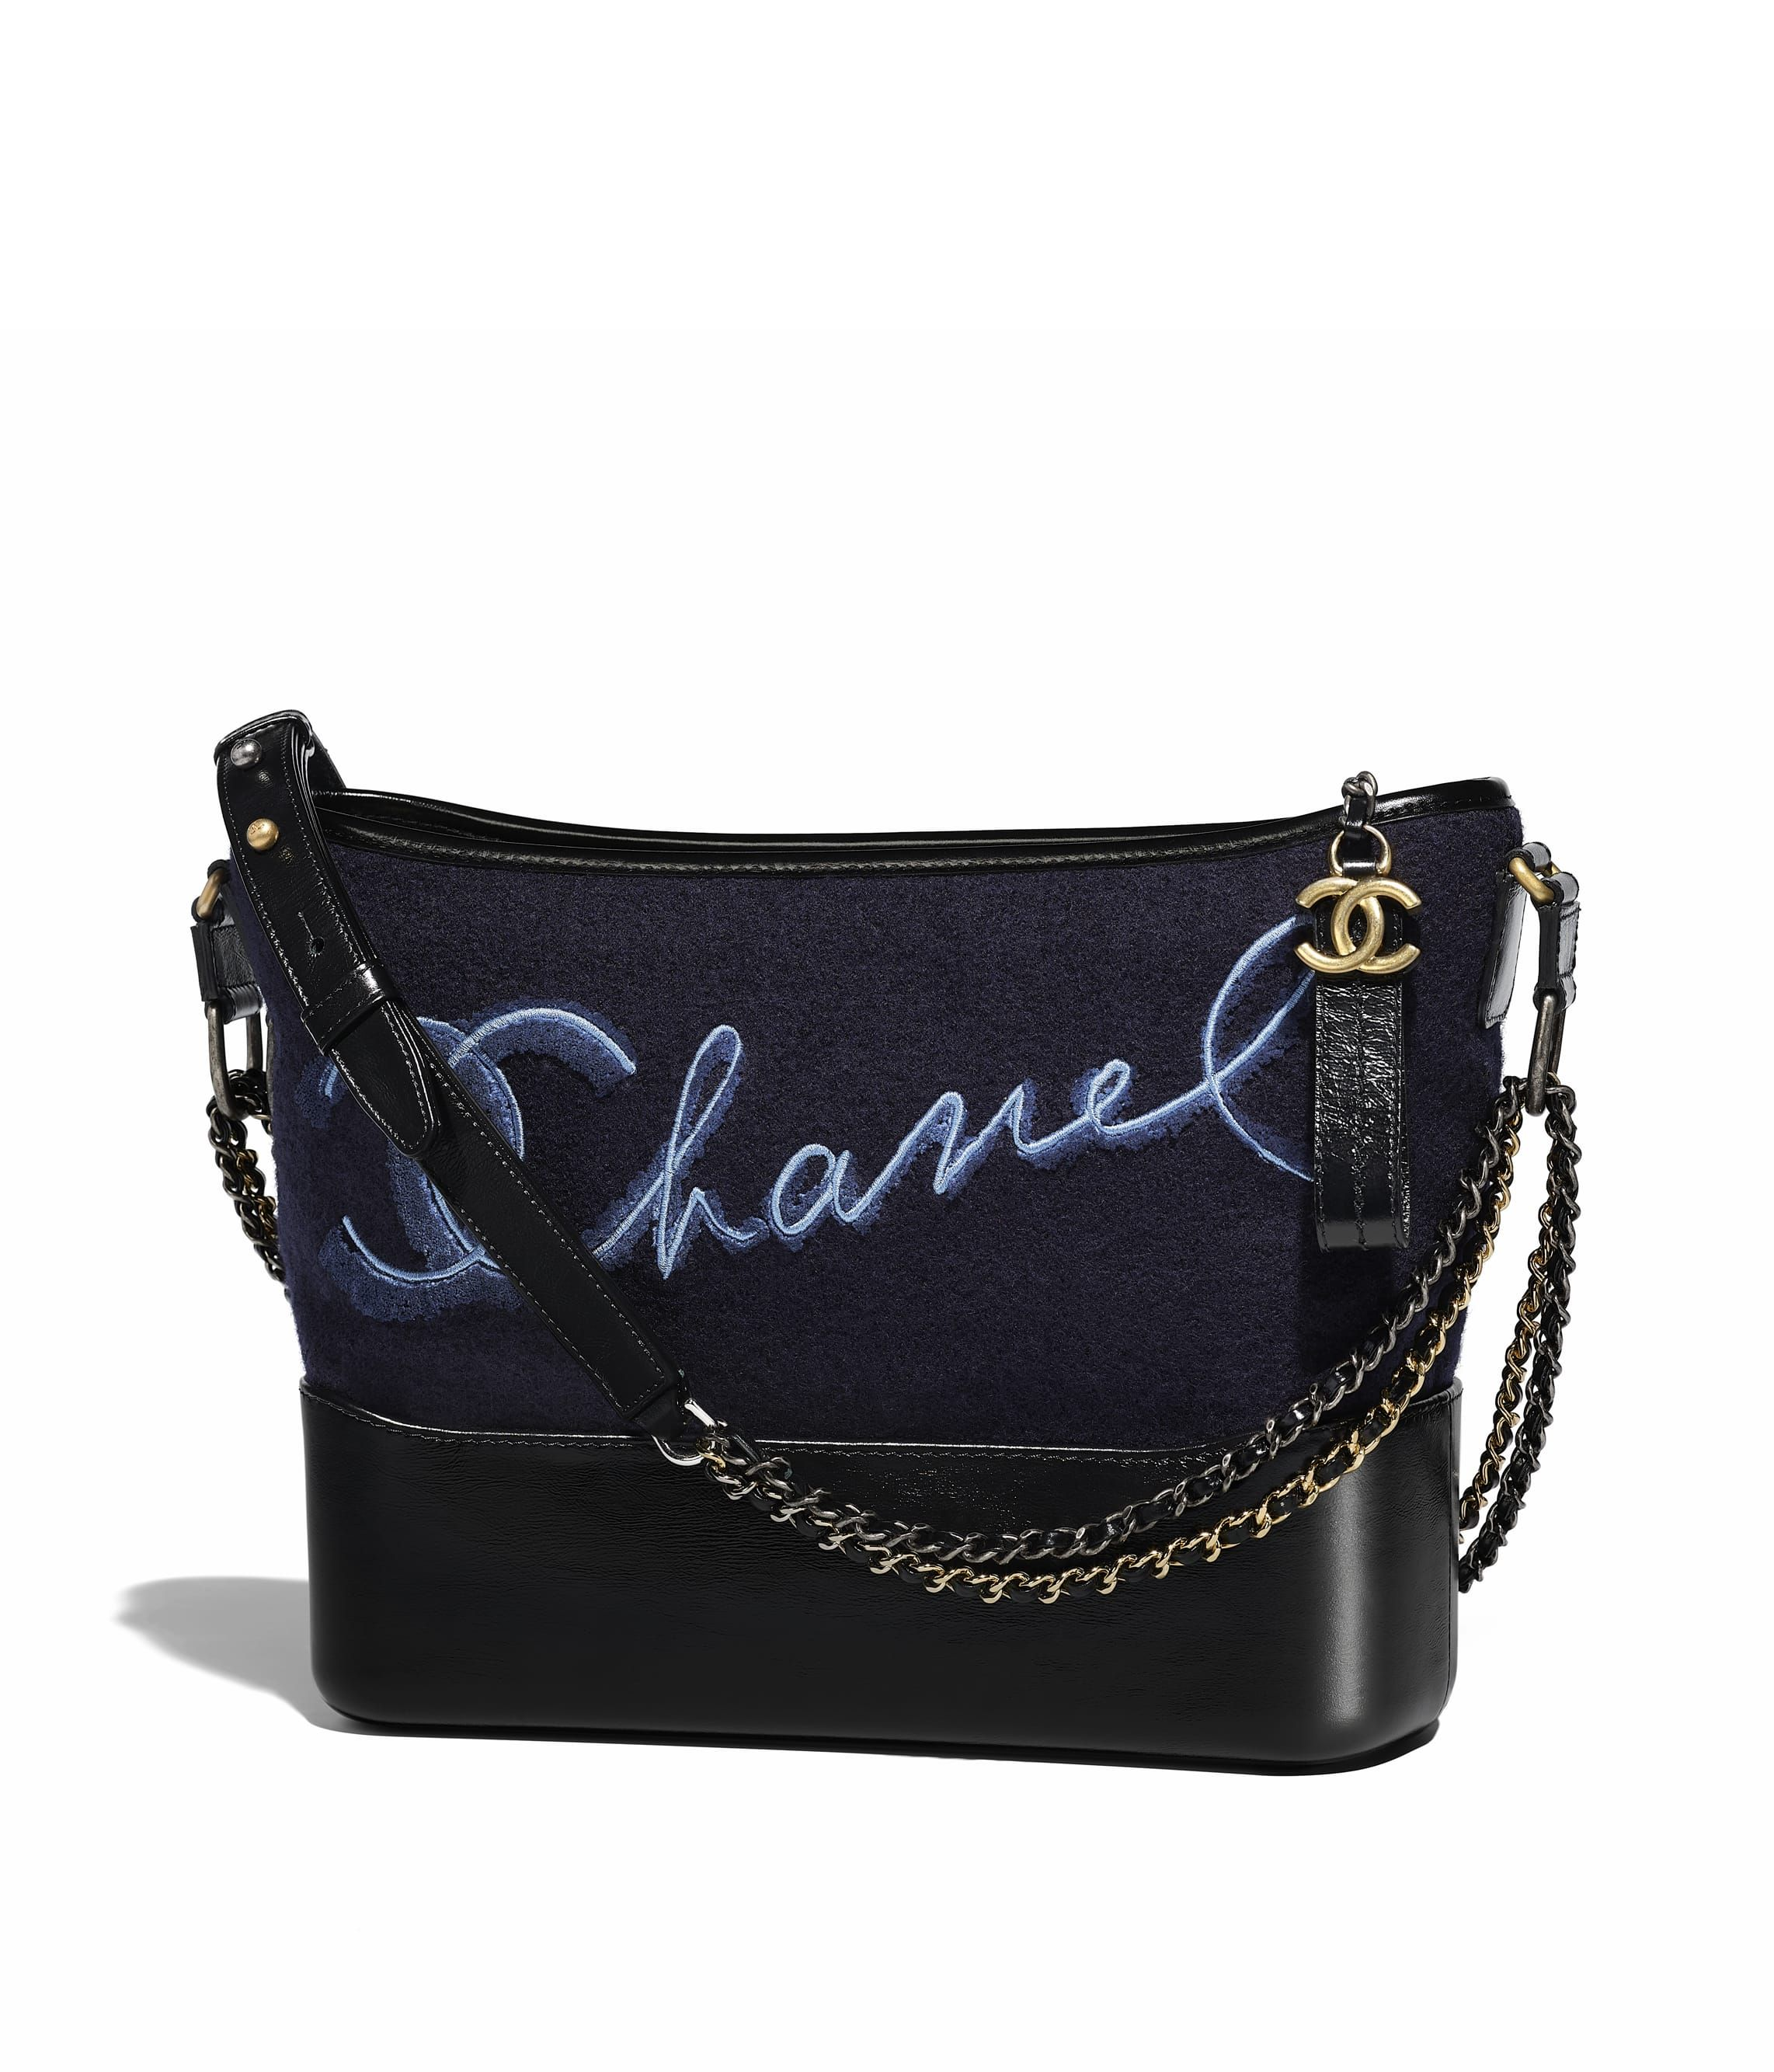 50079e740e5b Chanel - Métiers d'Art Paris-Hamburg 2017/18 | Navy blue & blue Chanel's  Gabrielle Hobo bag